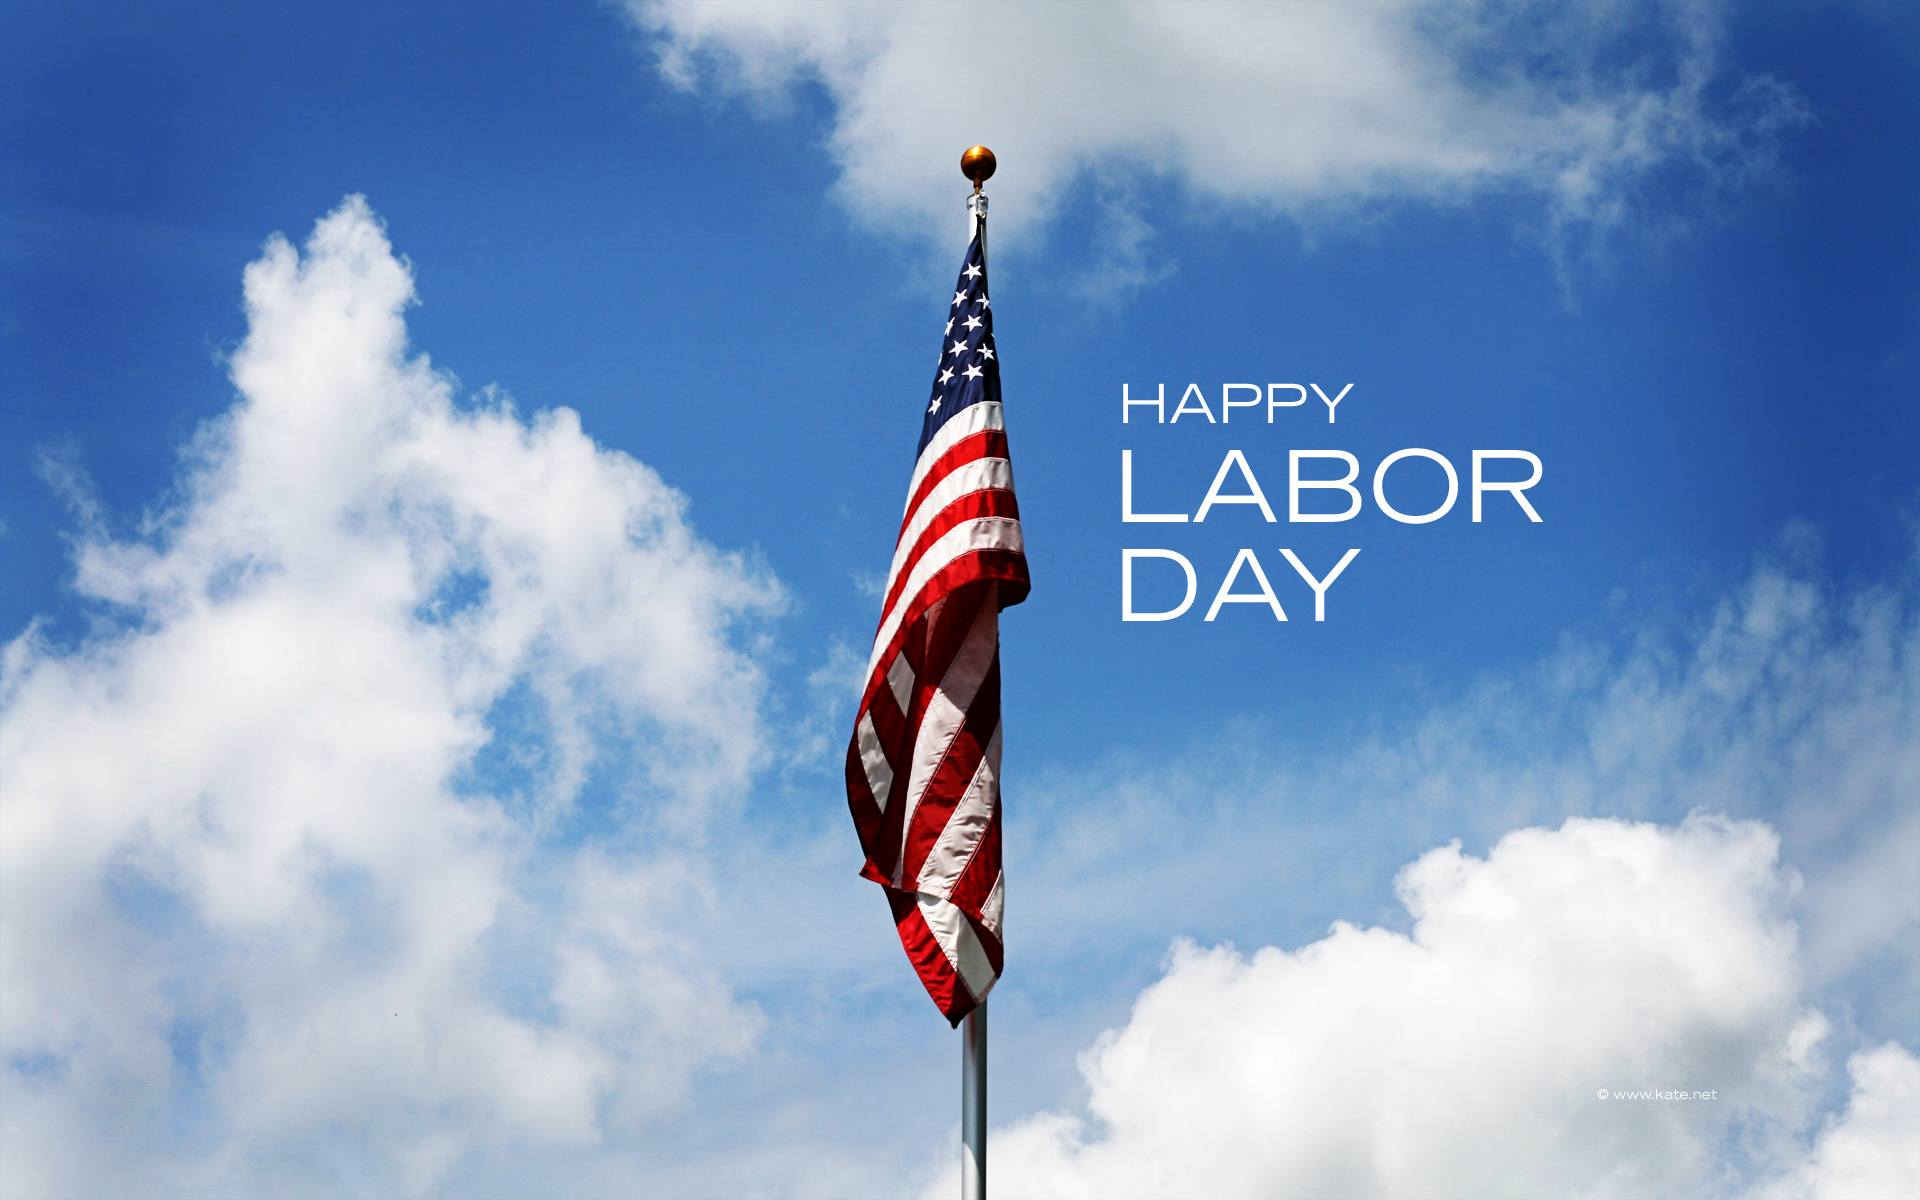 Labor Day Wallpapers Labor Day Resources From Kate